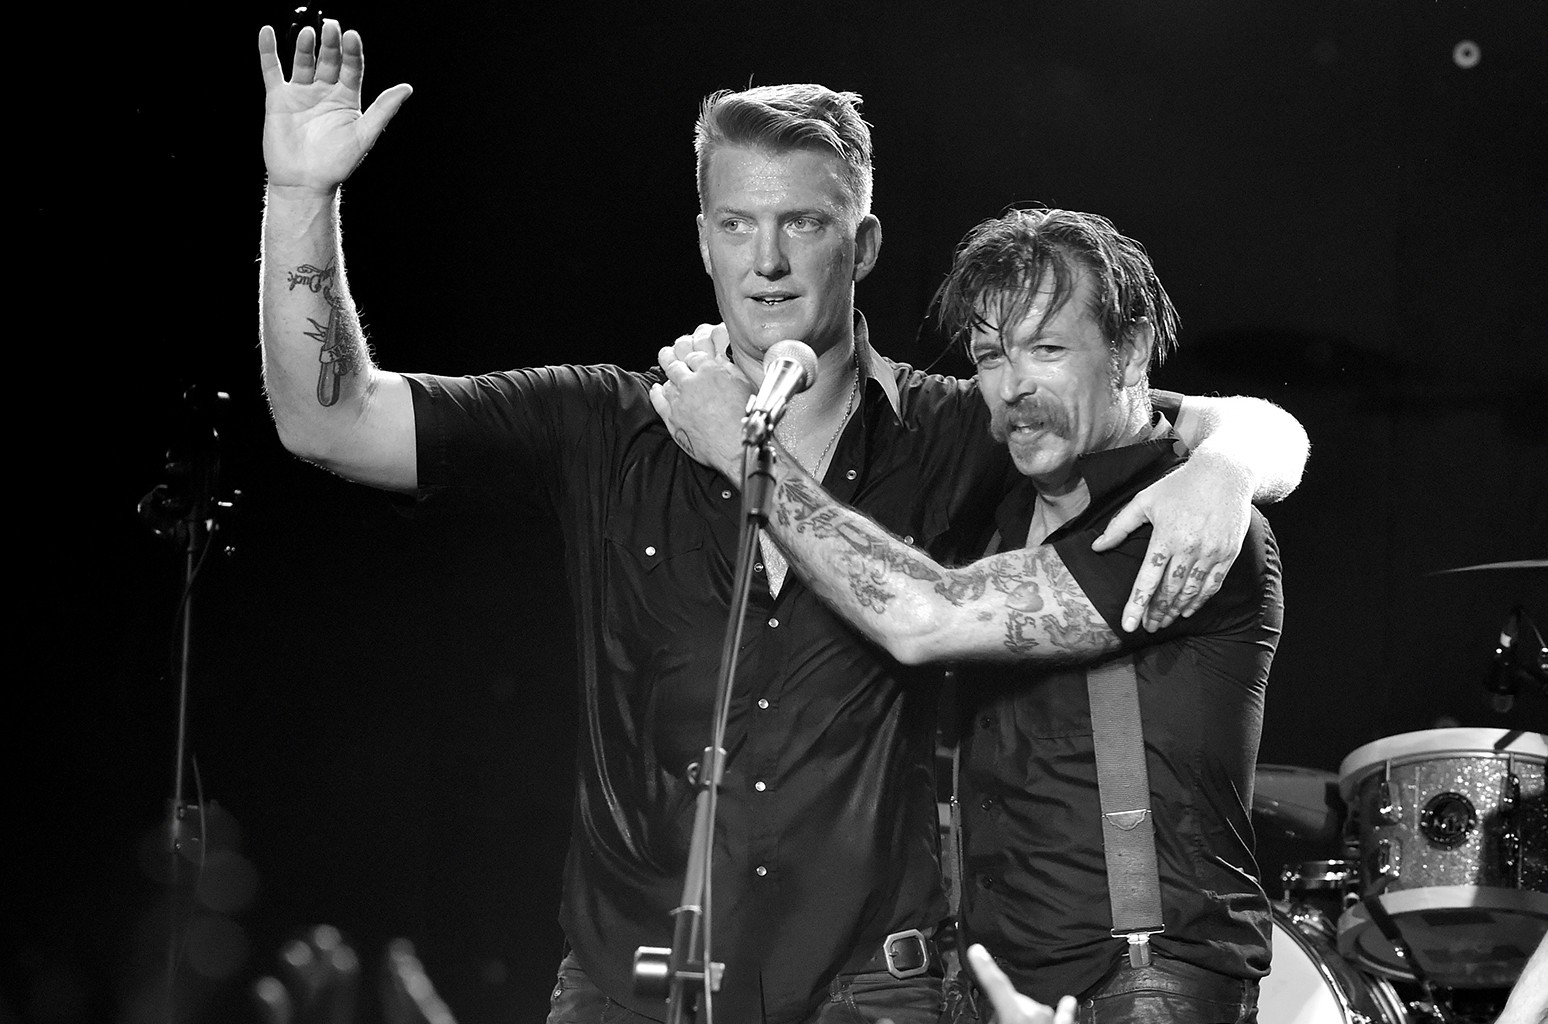 Josh Homme and Jesse Hughes of Eagles of Death Metal